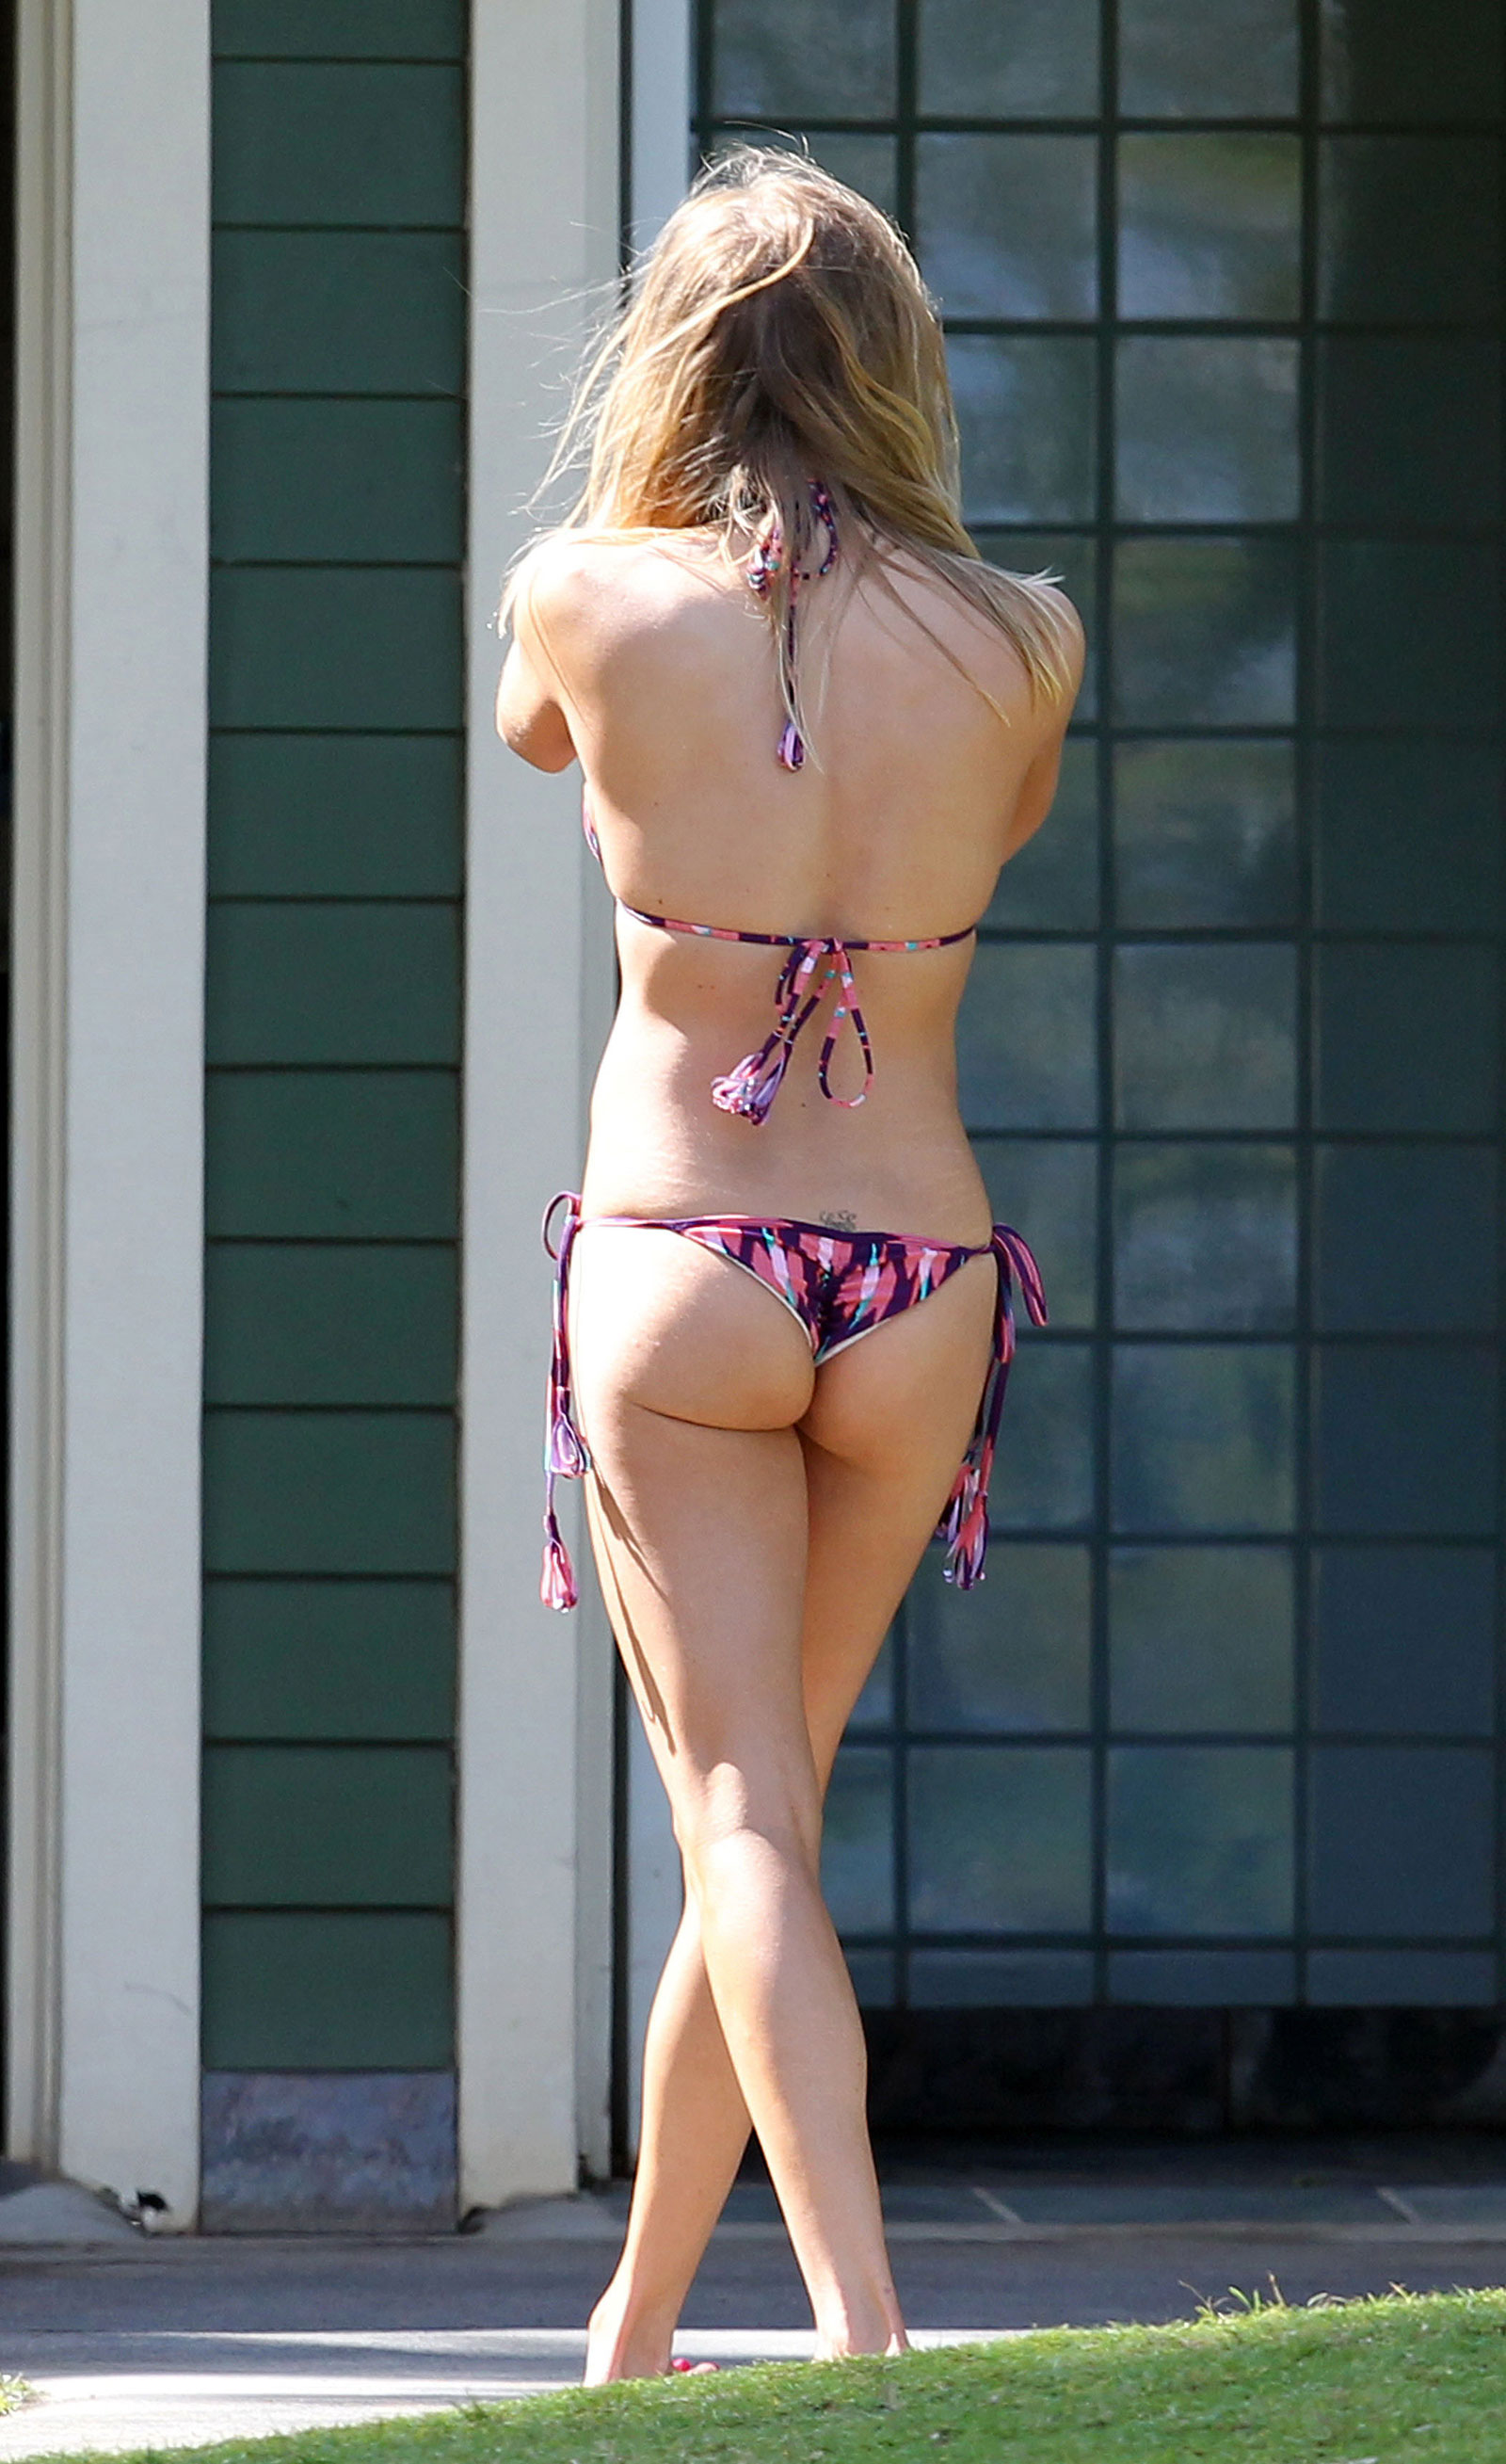 LeAnn Rimes in Bikini at the Beach in Hawaii - HawtCelebs - HawtCelebs: www.hawtcelebs.com/leann-rimes-in-bikini-at-the-beach-in-hawaii